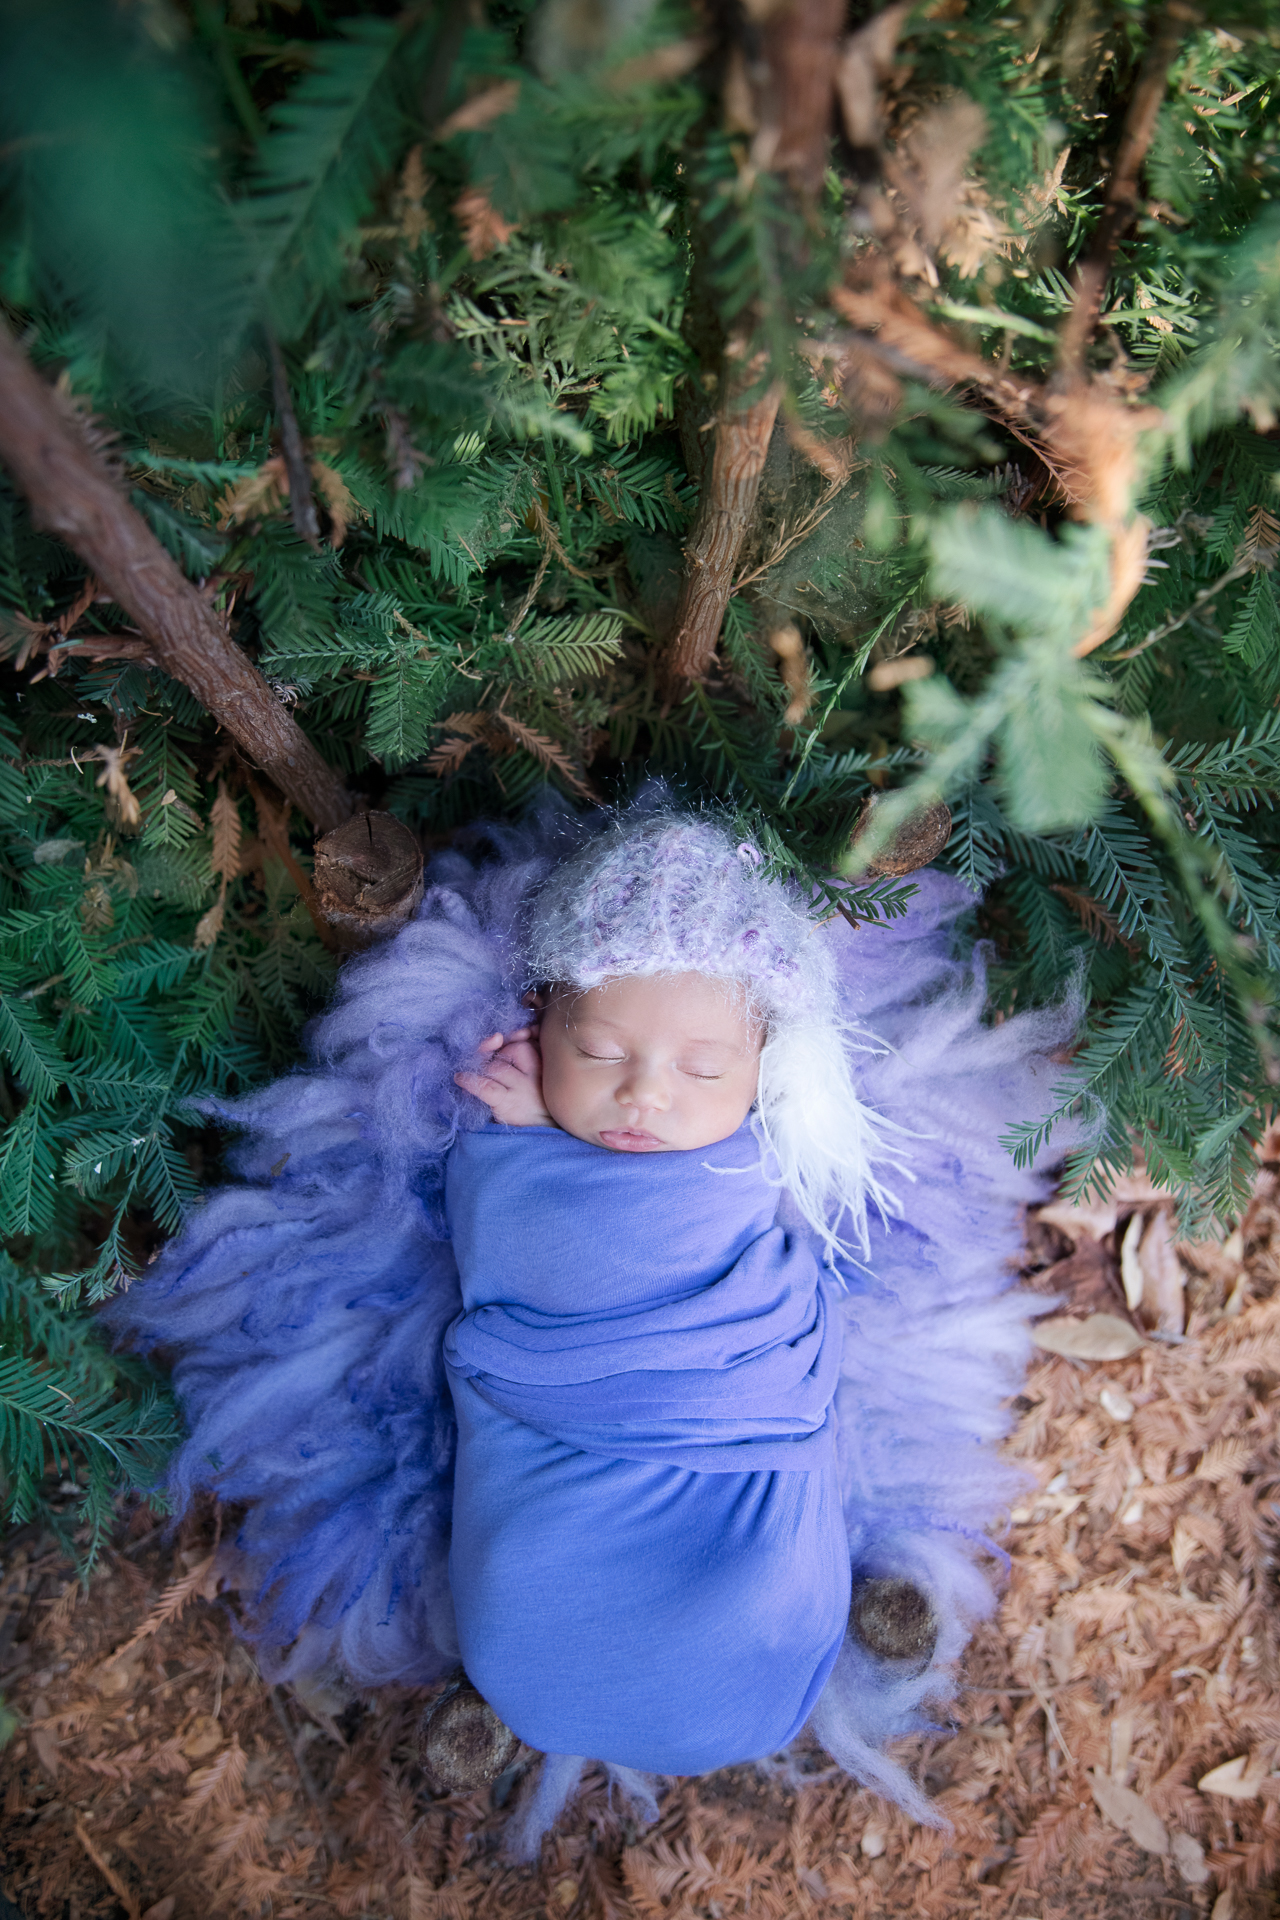 Newborn wearing purple hat and wrap rests on purple carpet outdoors during fall seasons.